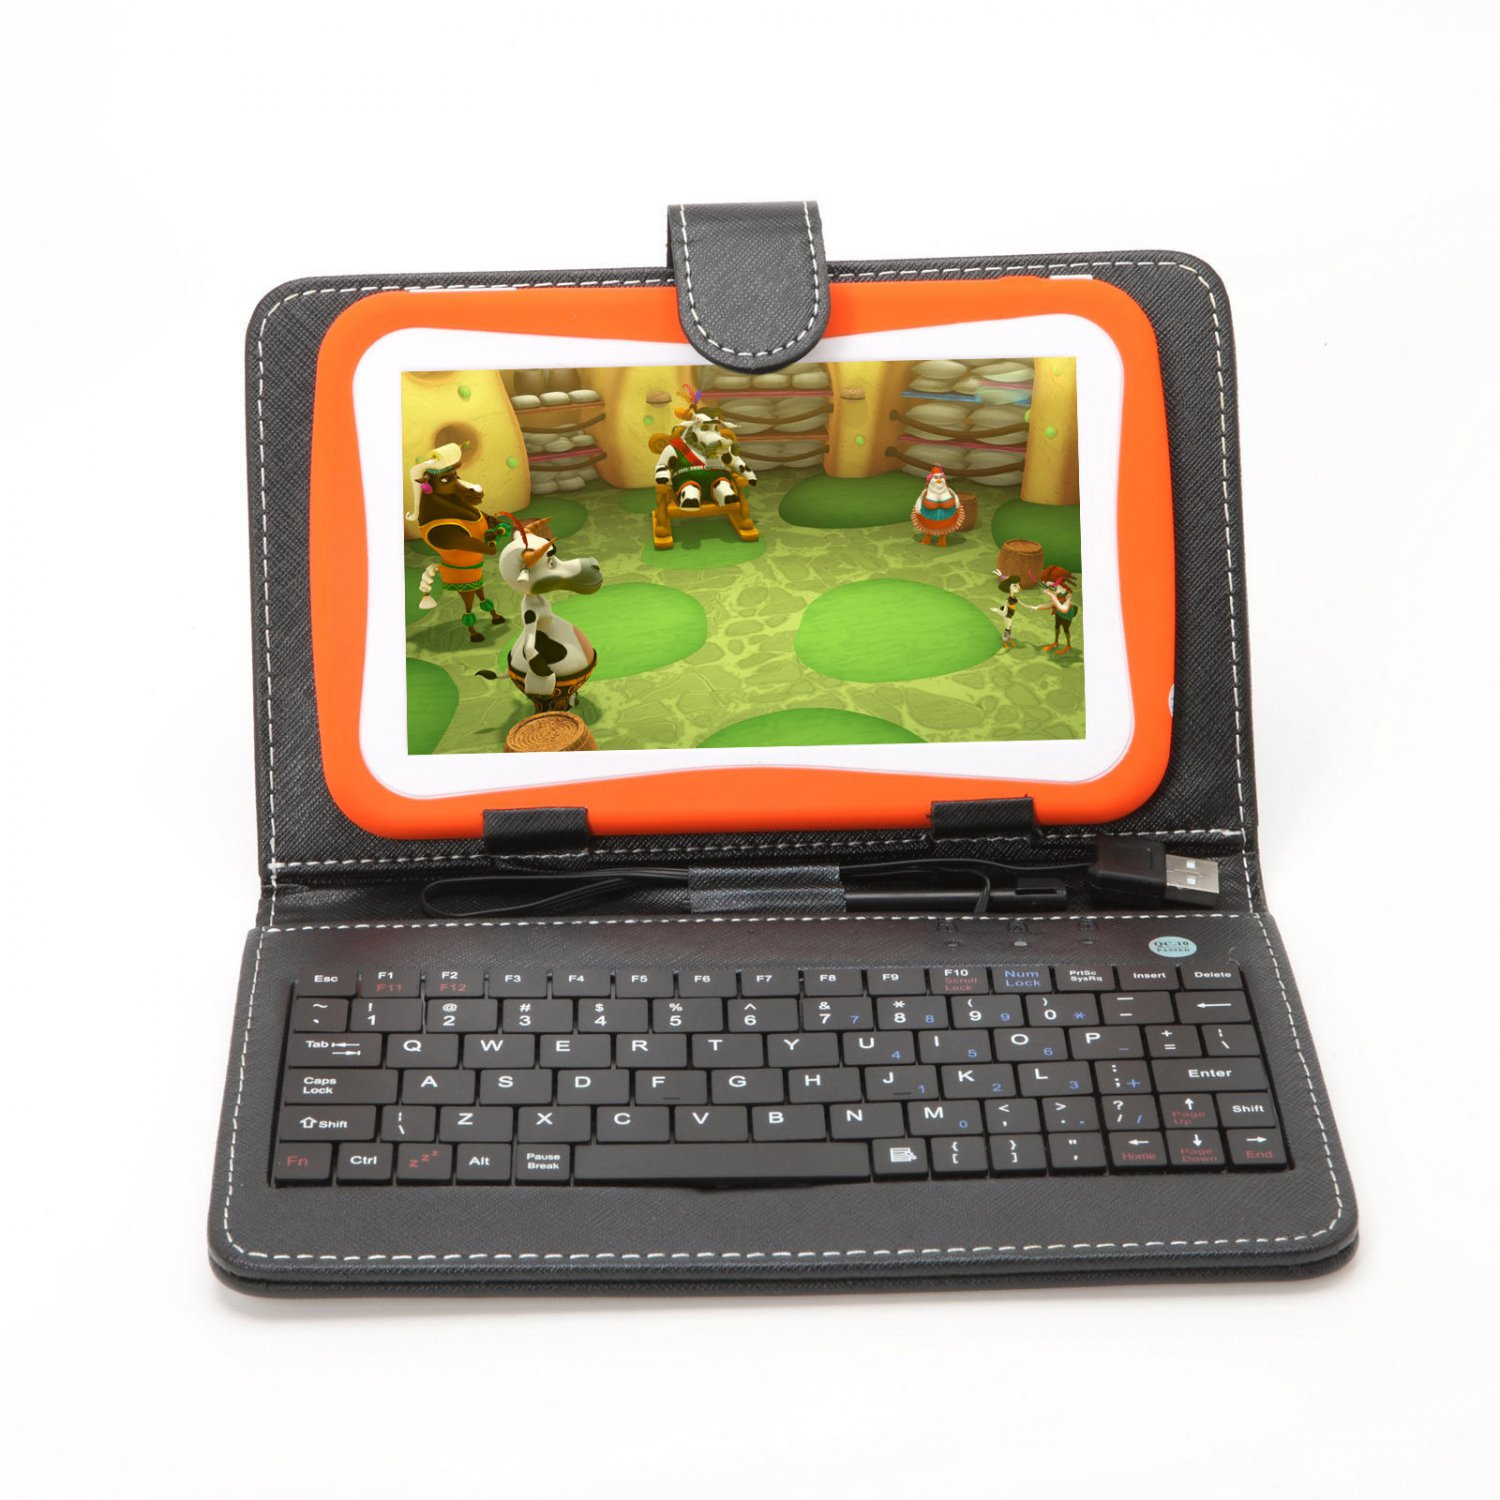 """iRulu 7"""" Google Tablet Android 4.0 for Kids A13 1.2GHz Dual Camera w/ Keyboard"""